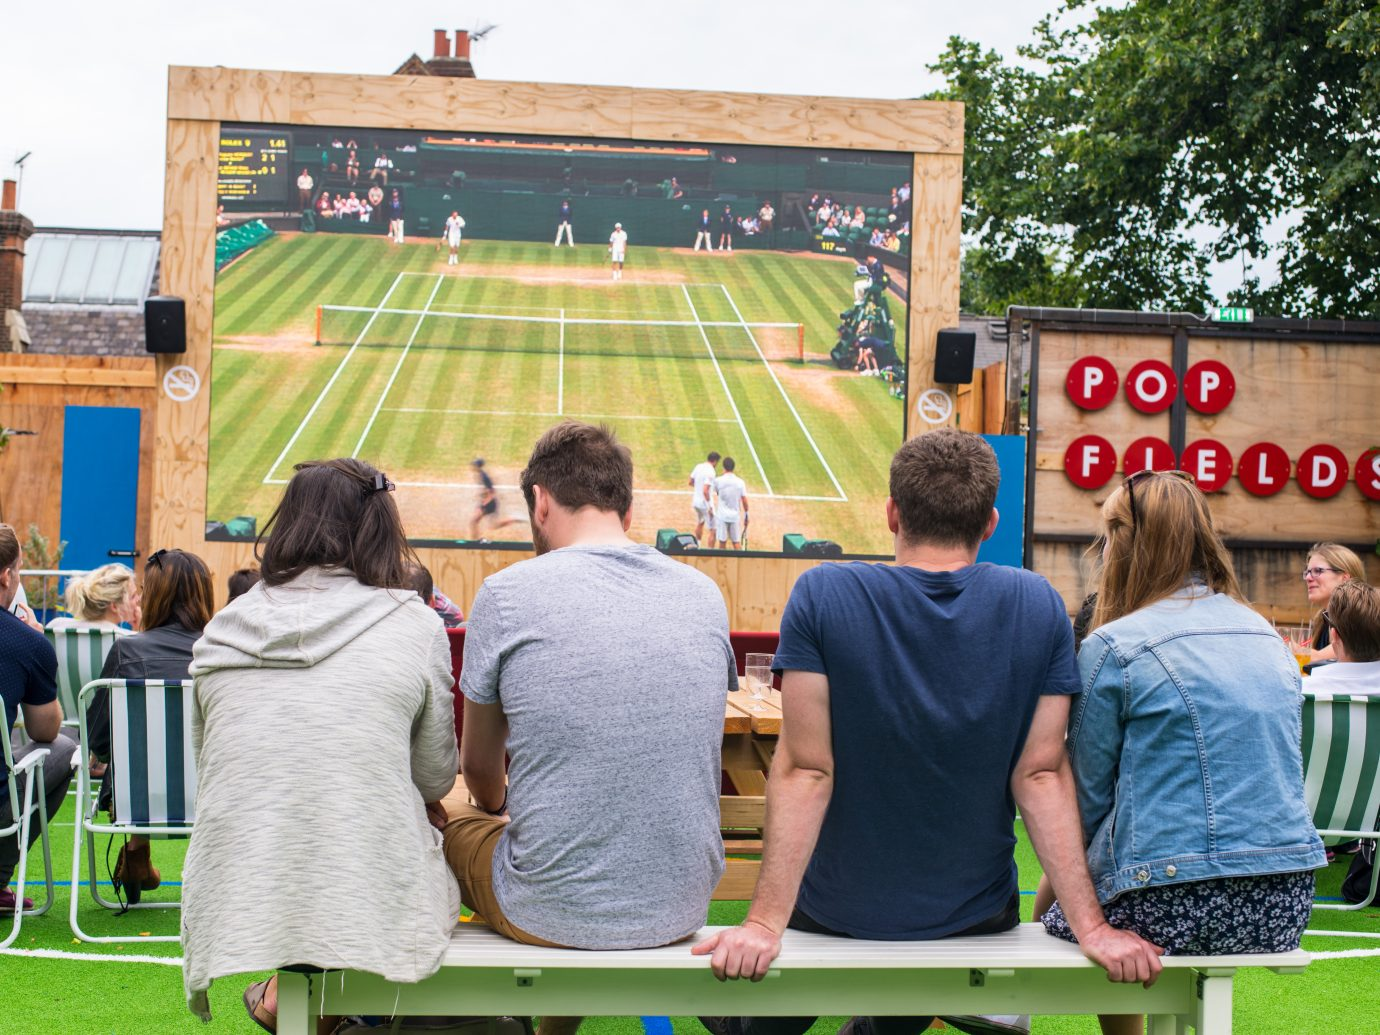 People talking and drinking while watching Wimbledon tennis match in a big outdoor screen in Pop Fields, part of the trendy venue Pop Brixton, South London.